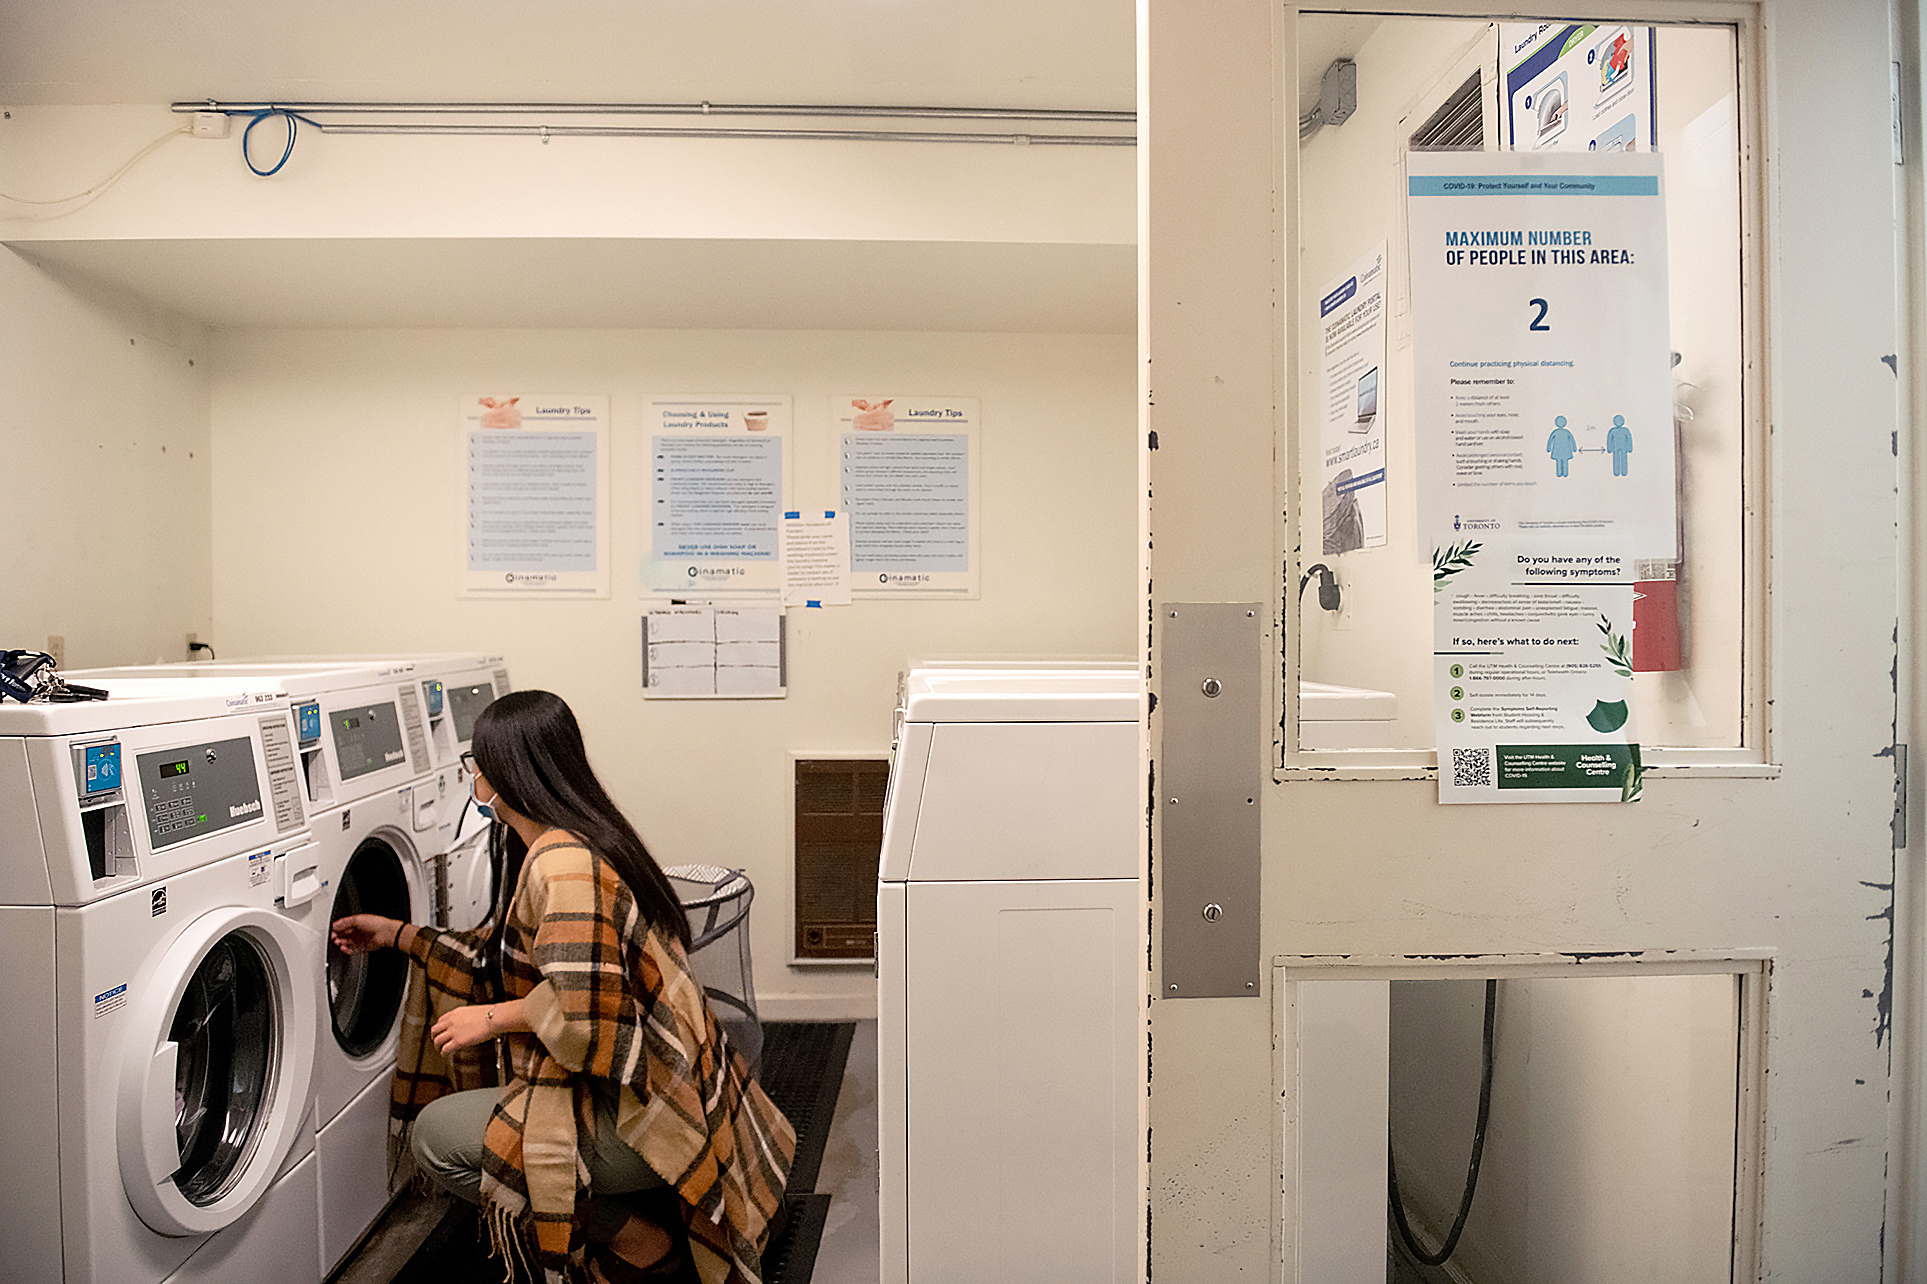 Shirley Liu crouched in front of washing machine in a laundry room with a sign on the door indicating a maximum of two people allowed in the area